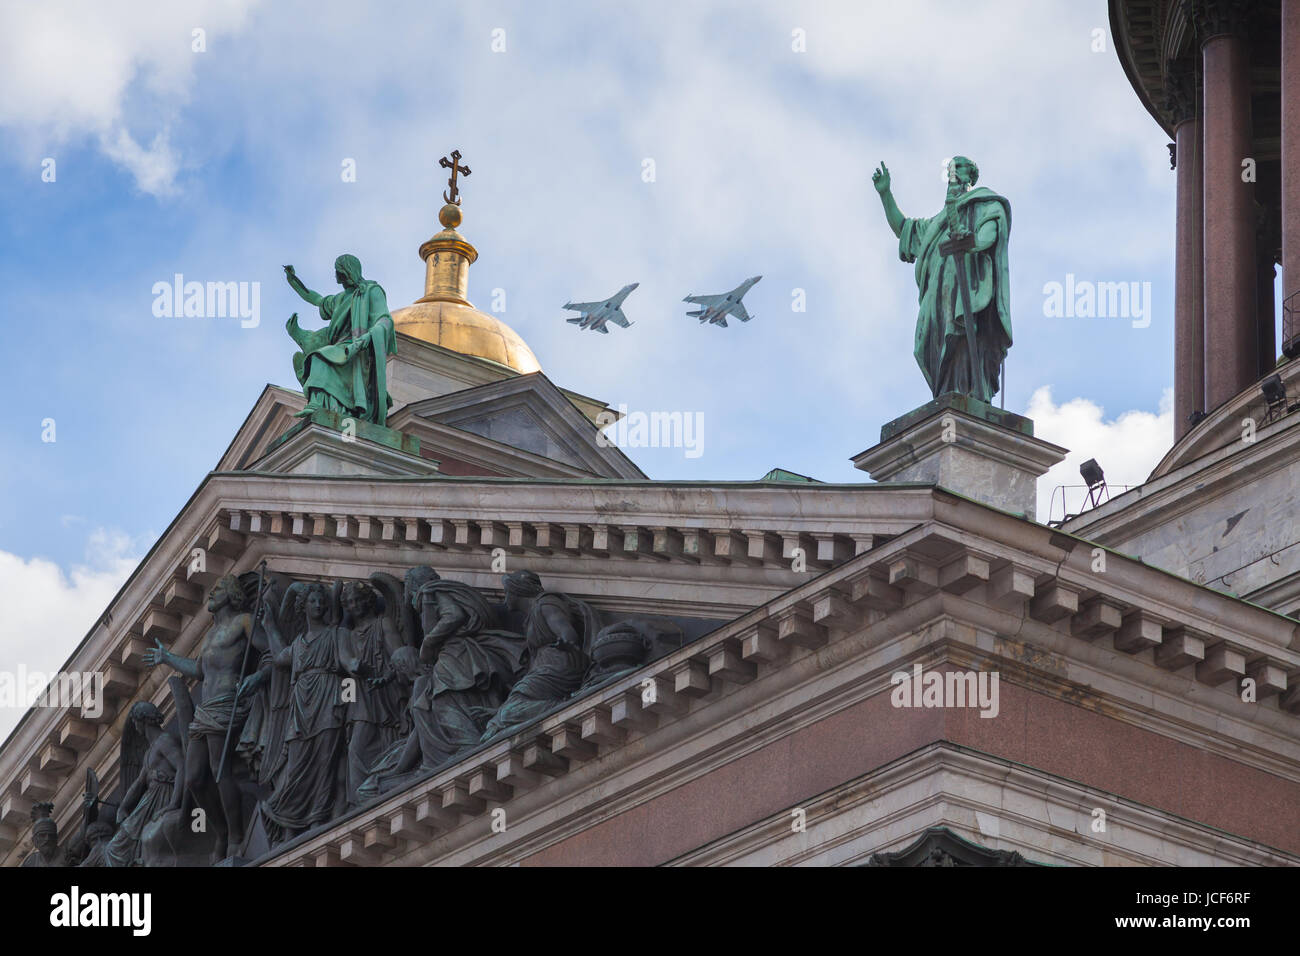 ST. PETERSBURG, RUSSIA - MAY 09, 2017: Isaac cathedral and Military aviation SU-27 in sky in a parade, celebration - Stock Image